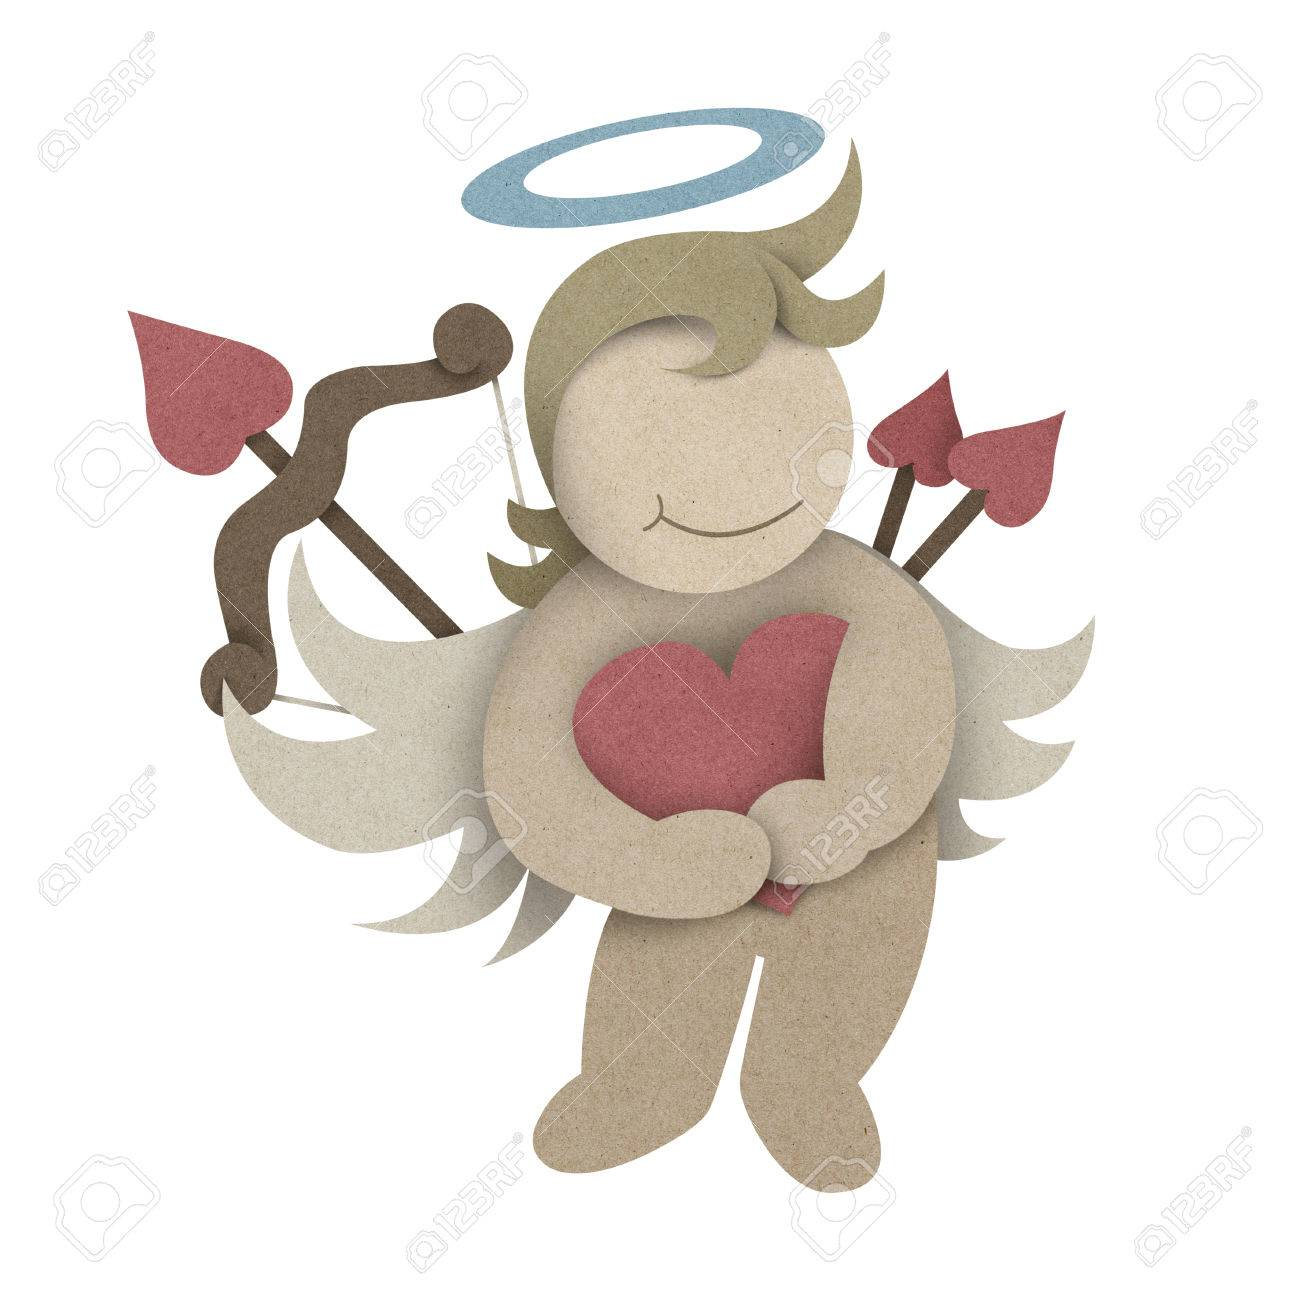 Cupid hug love heart made by recycled paper craft stock photo cupid hug love heart made by recycled paper craft stock photo 35604178 jeuxipadfo Images